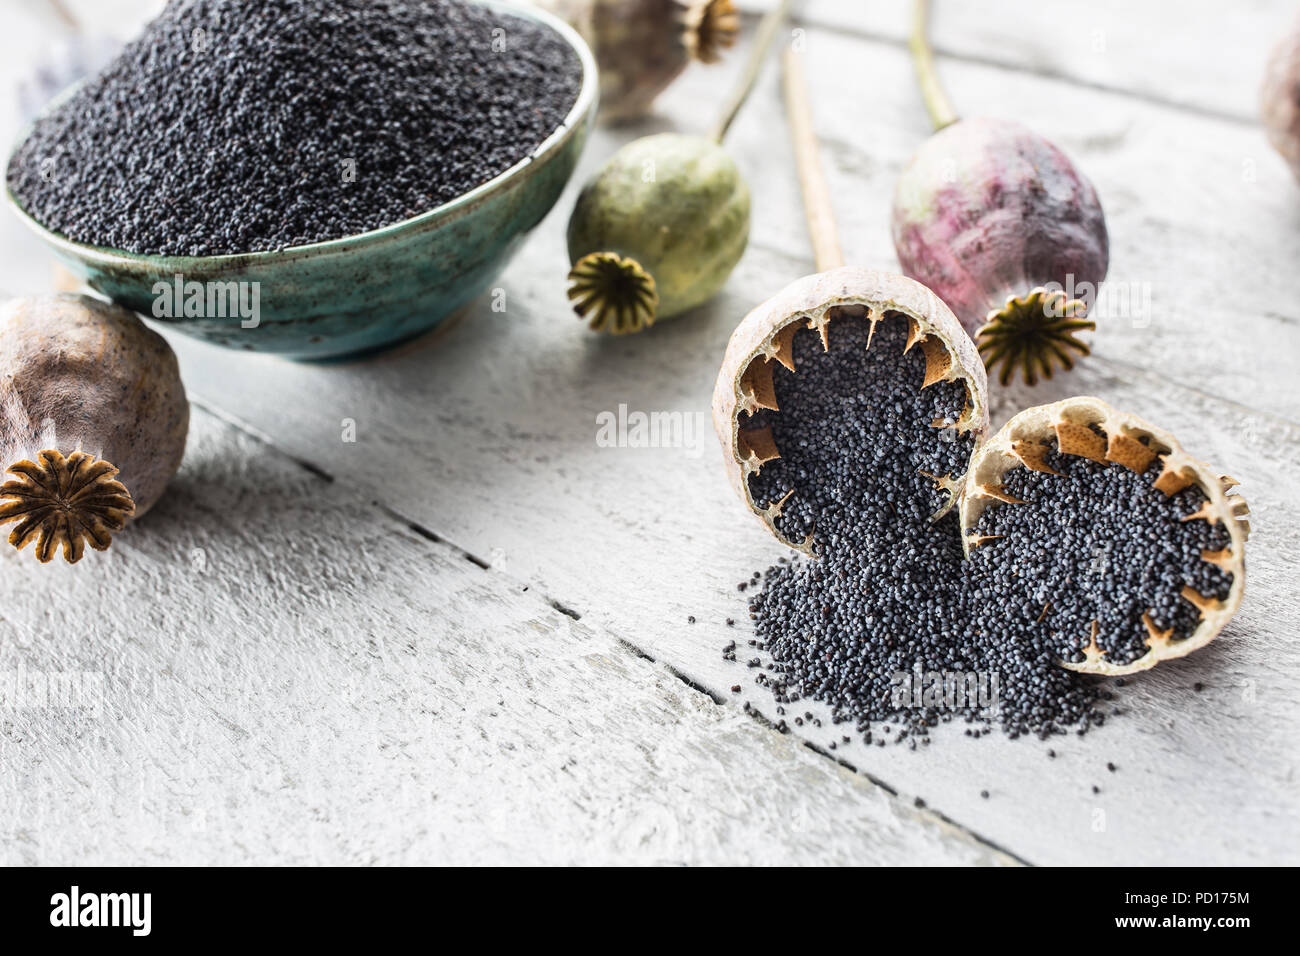 Poppy seed with their heads on wooden boards. - Stock Image